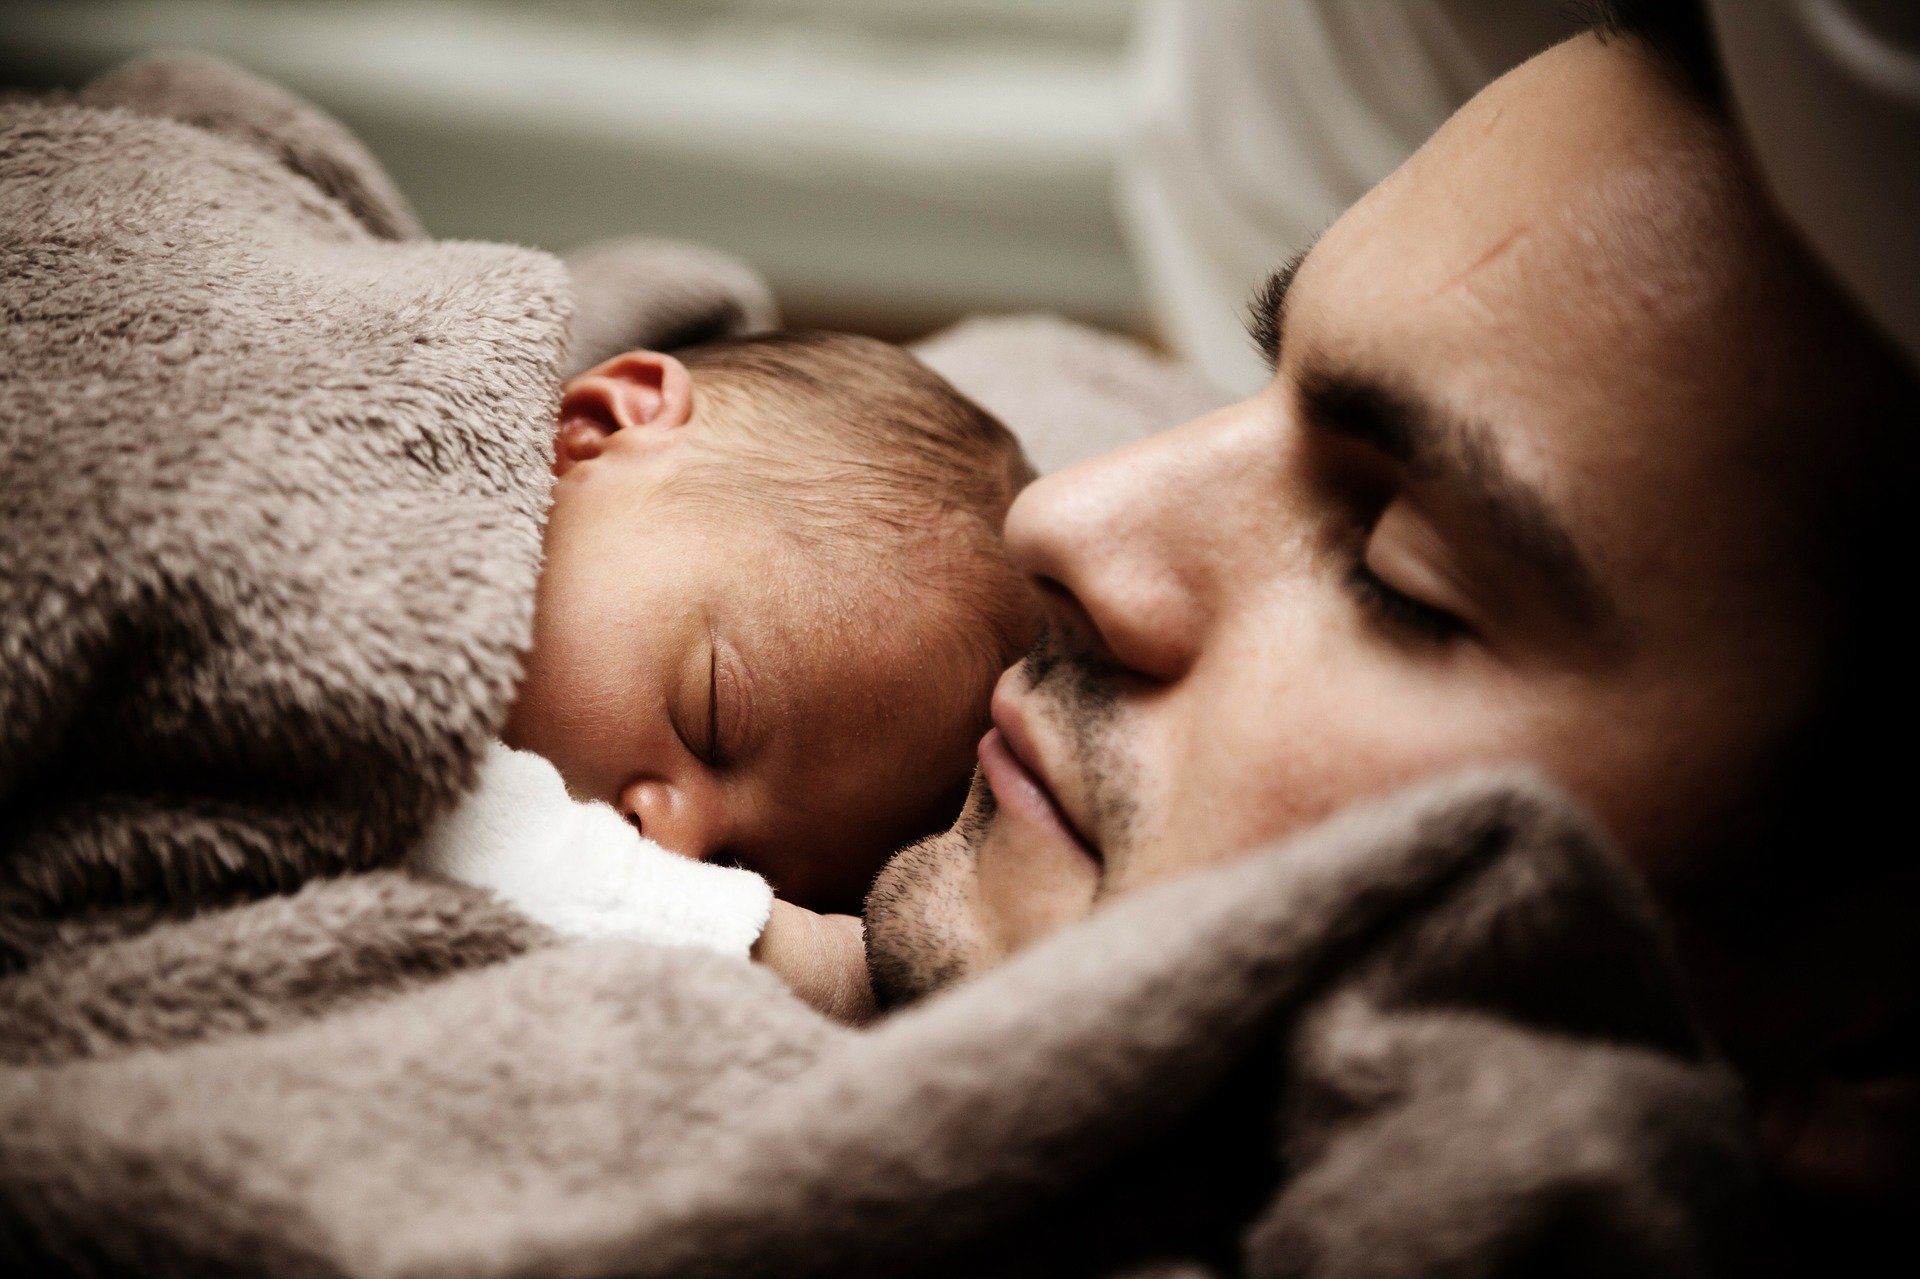 https://pixabay.com/photos/baby-child-cute-dad-daddy-family-22194/